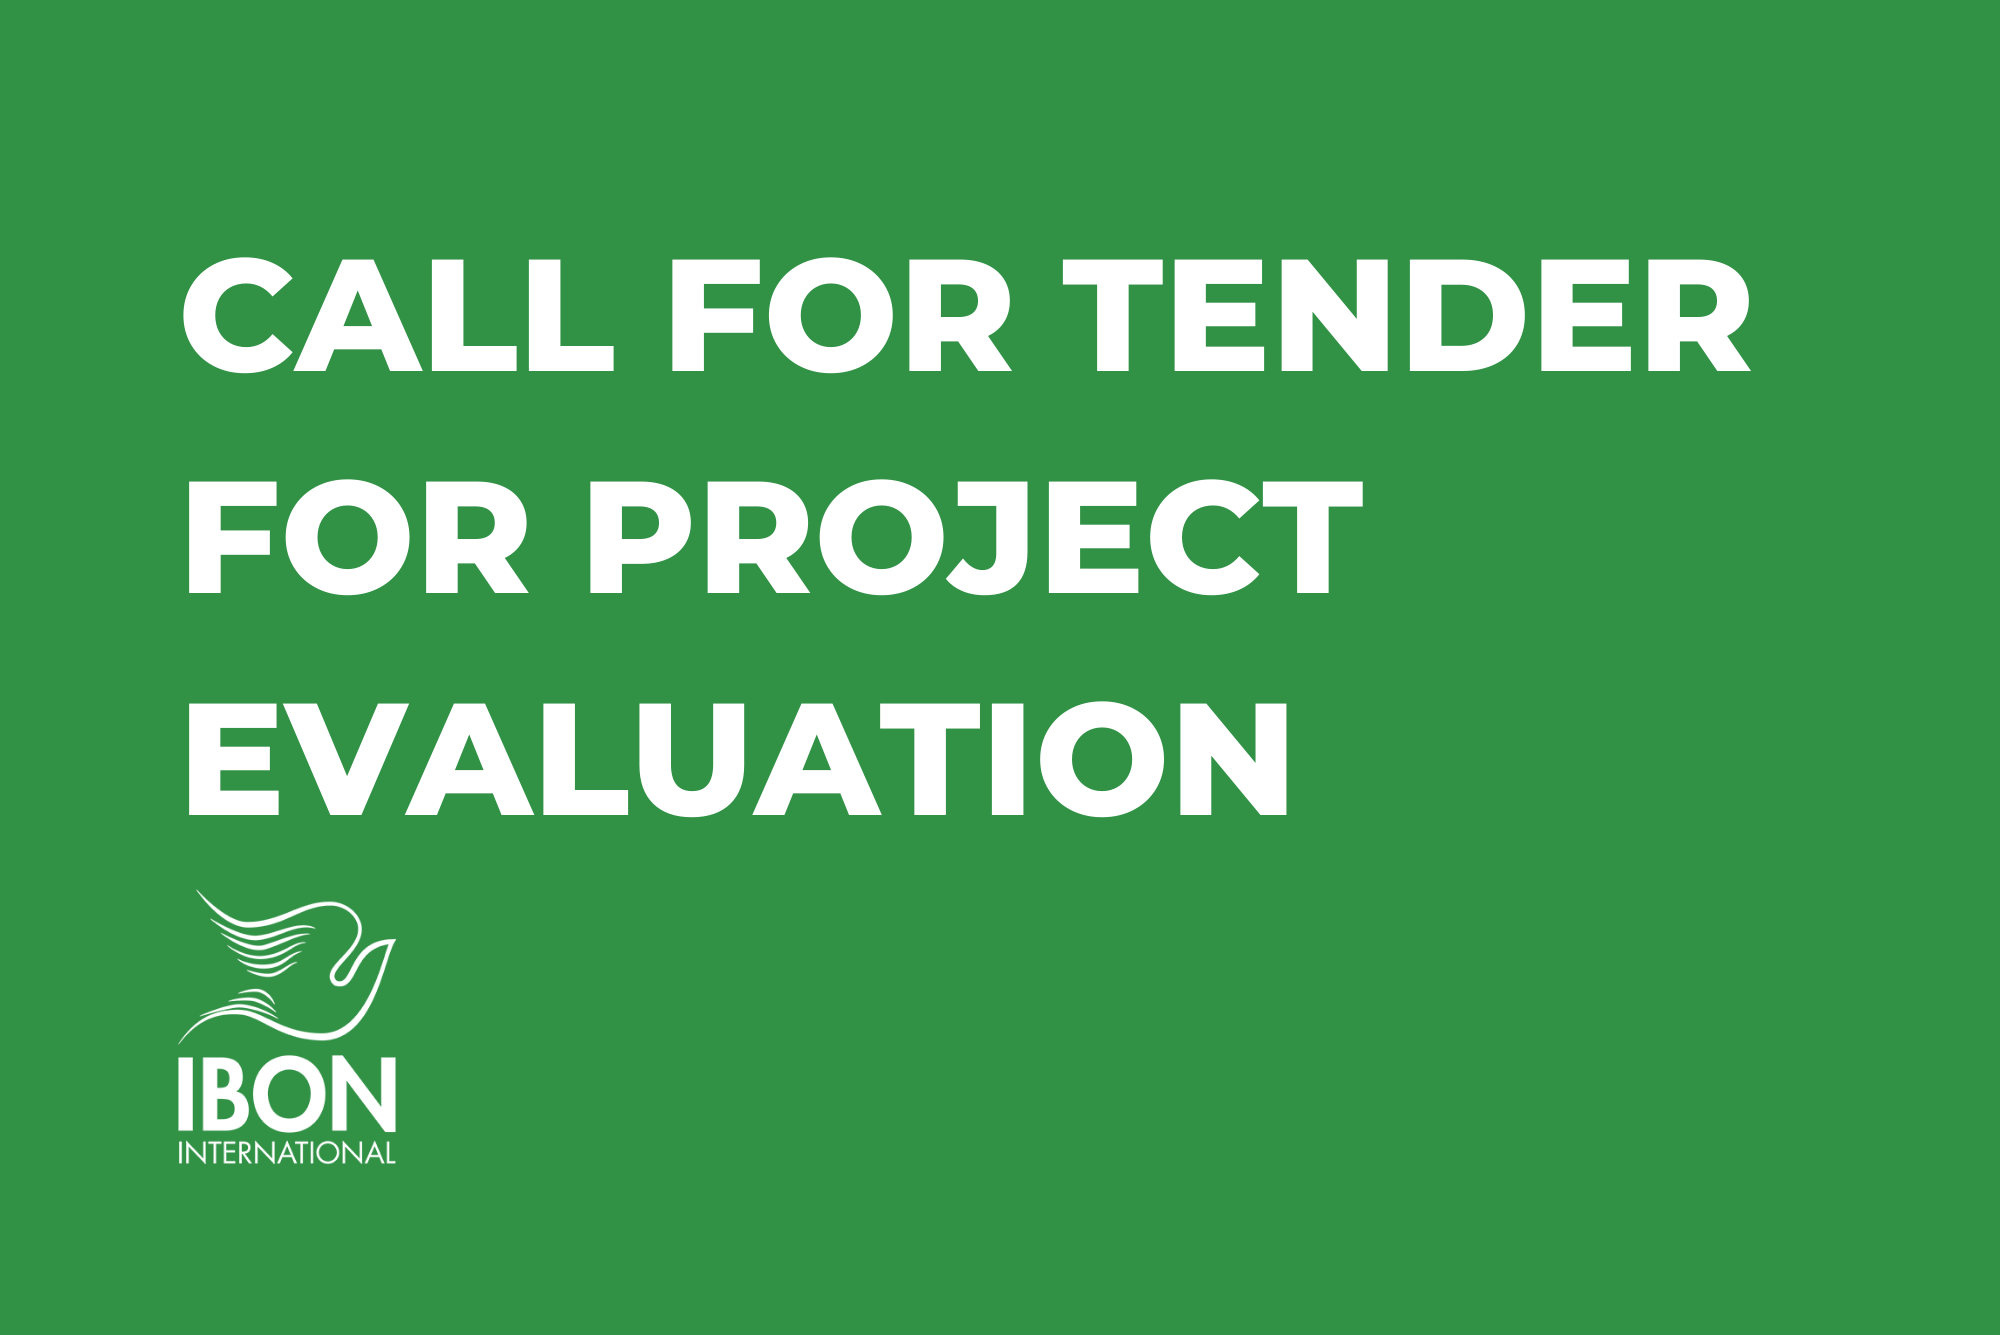 Call for Tender for Project Evaluation